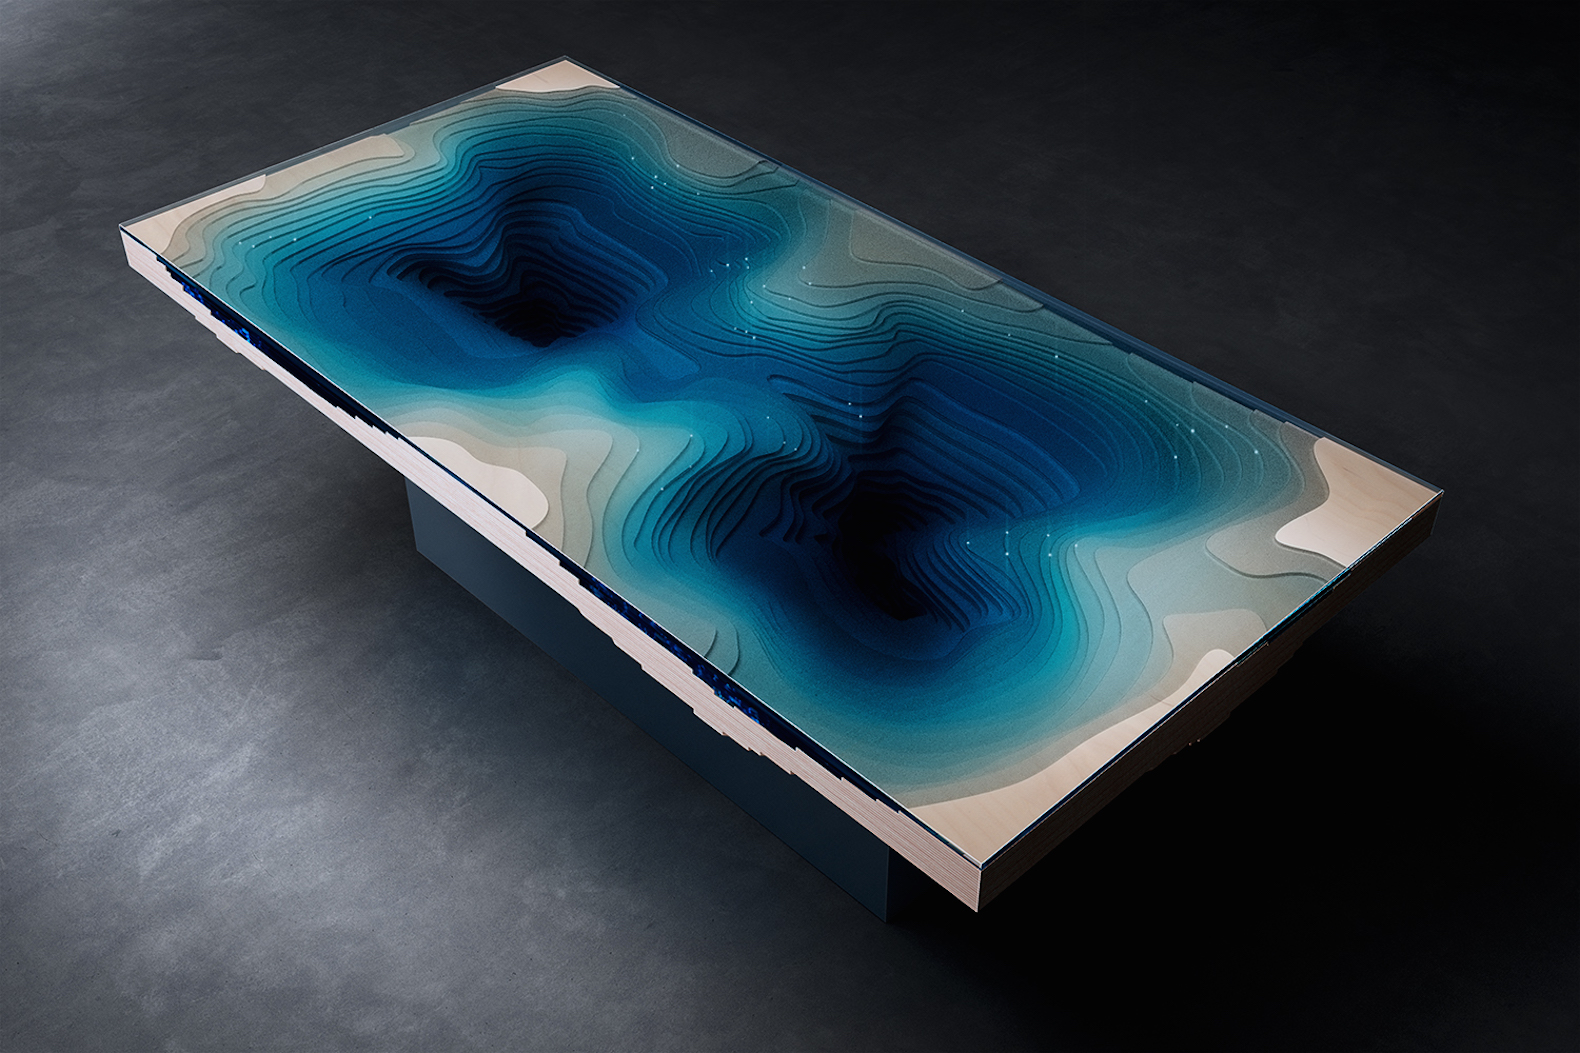 Lose Yourself Inside The Abyss Table S Mesmerizing Ocean